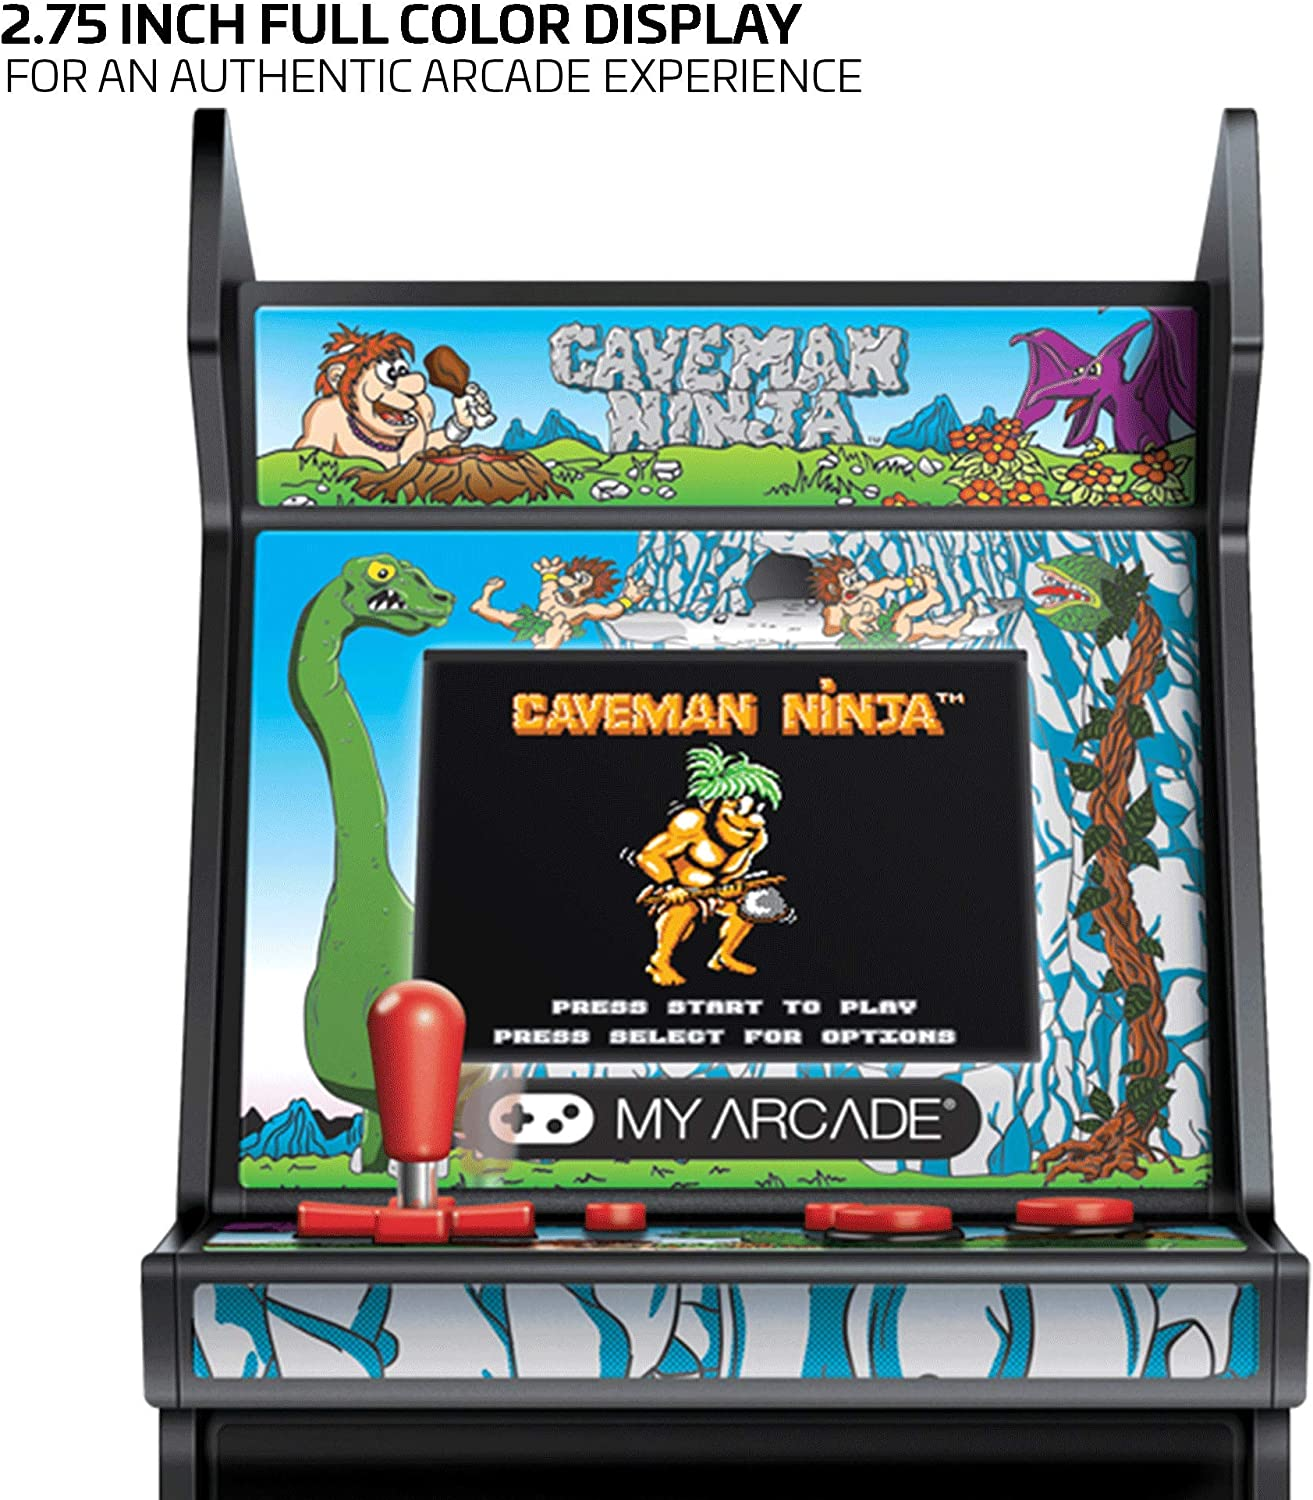 My Arcade Micro Player Mini Arcade Machine: Caveman Ninja Video Game, Fully Playable, 6.75 Inch Collectible, Color Display, Speaker, Volume Buttons, ...